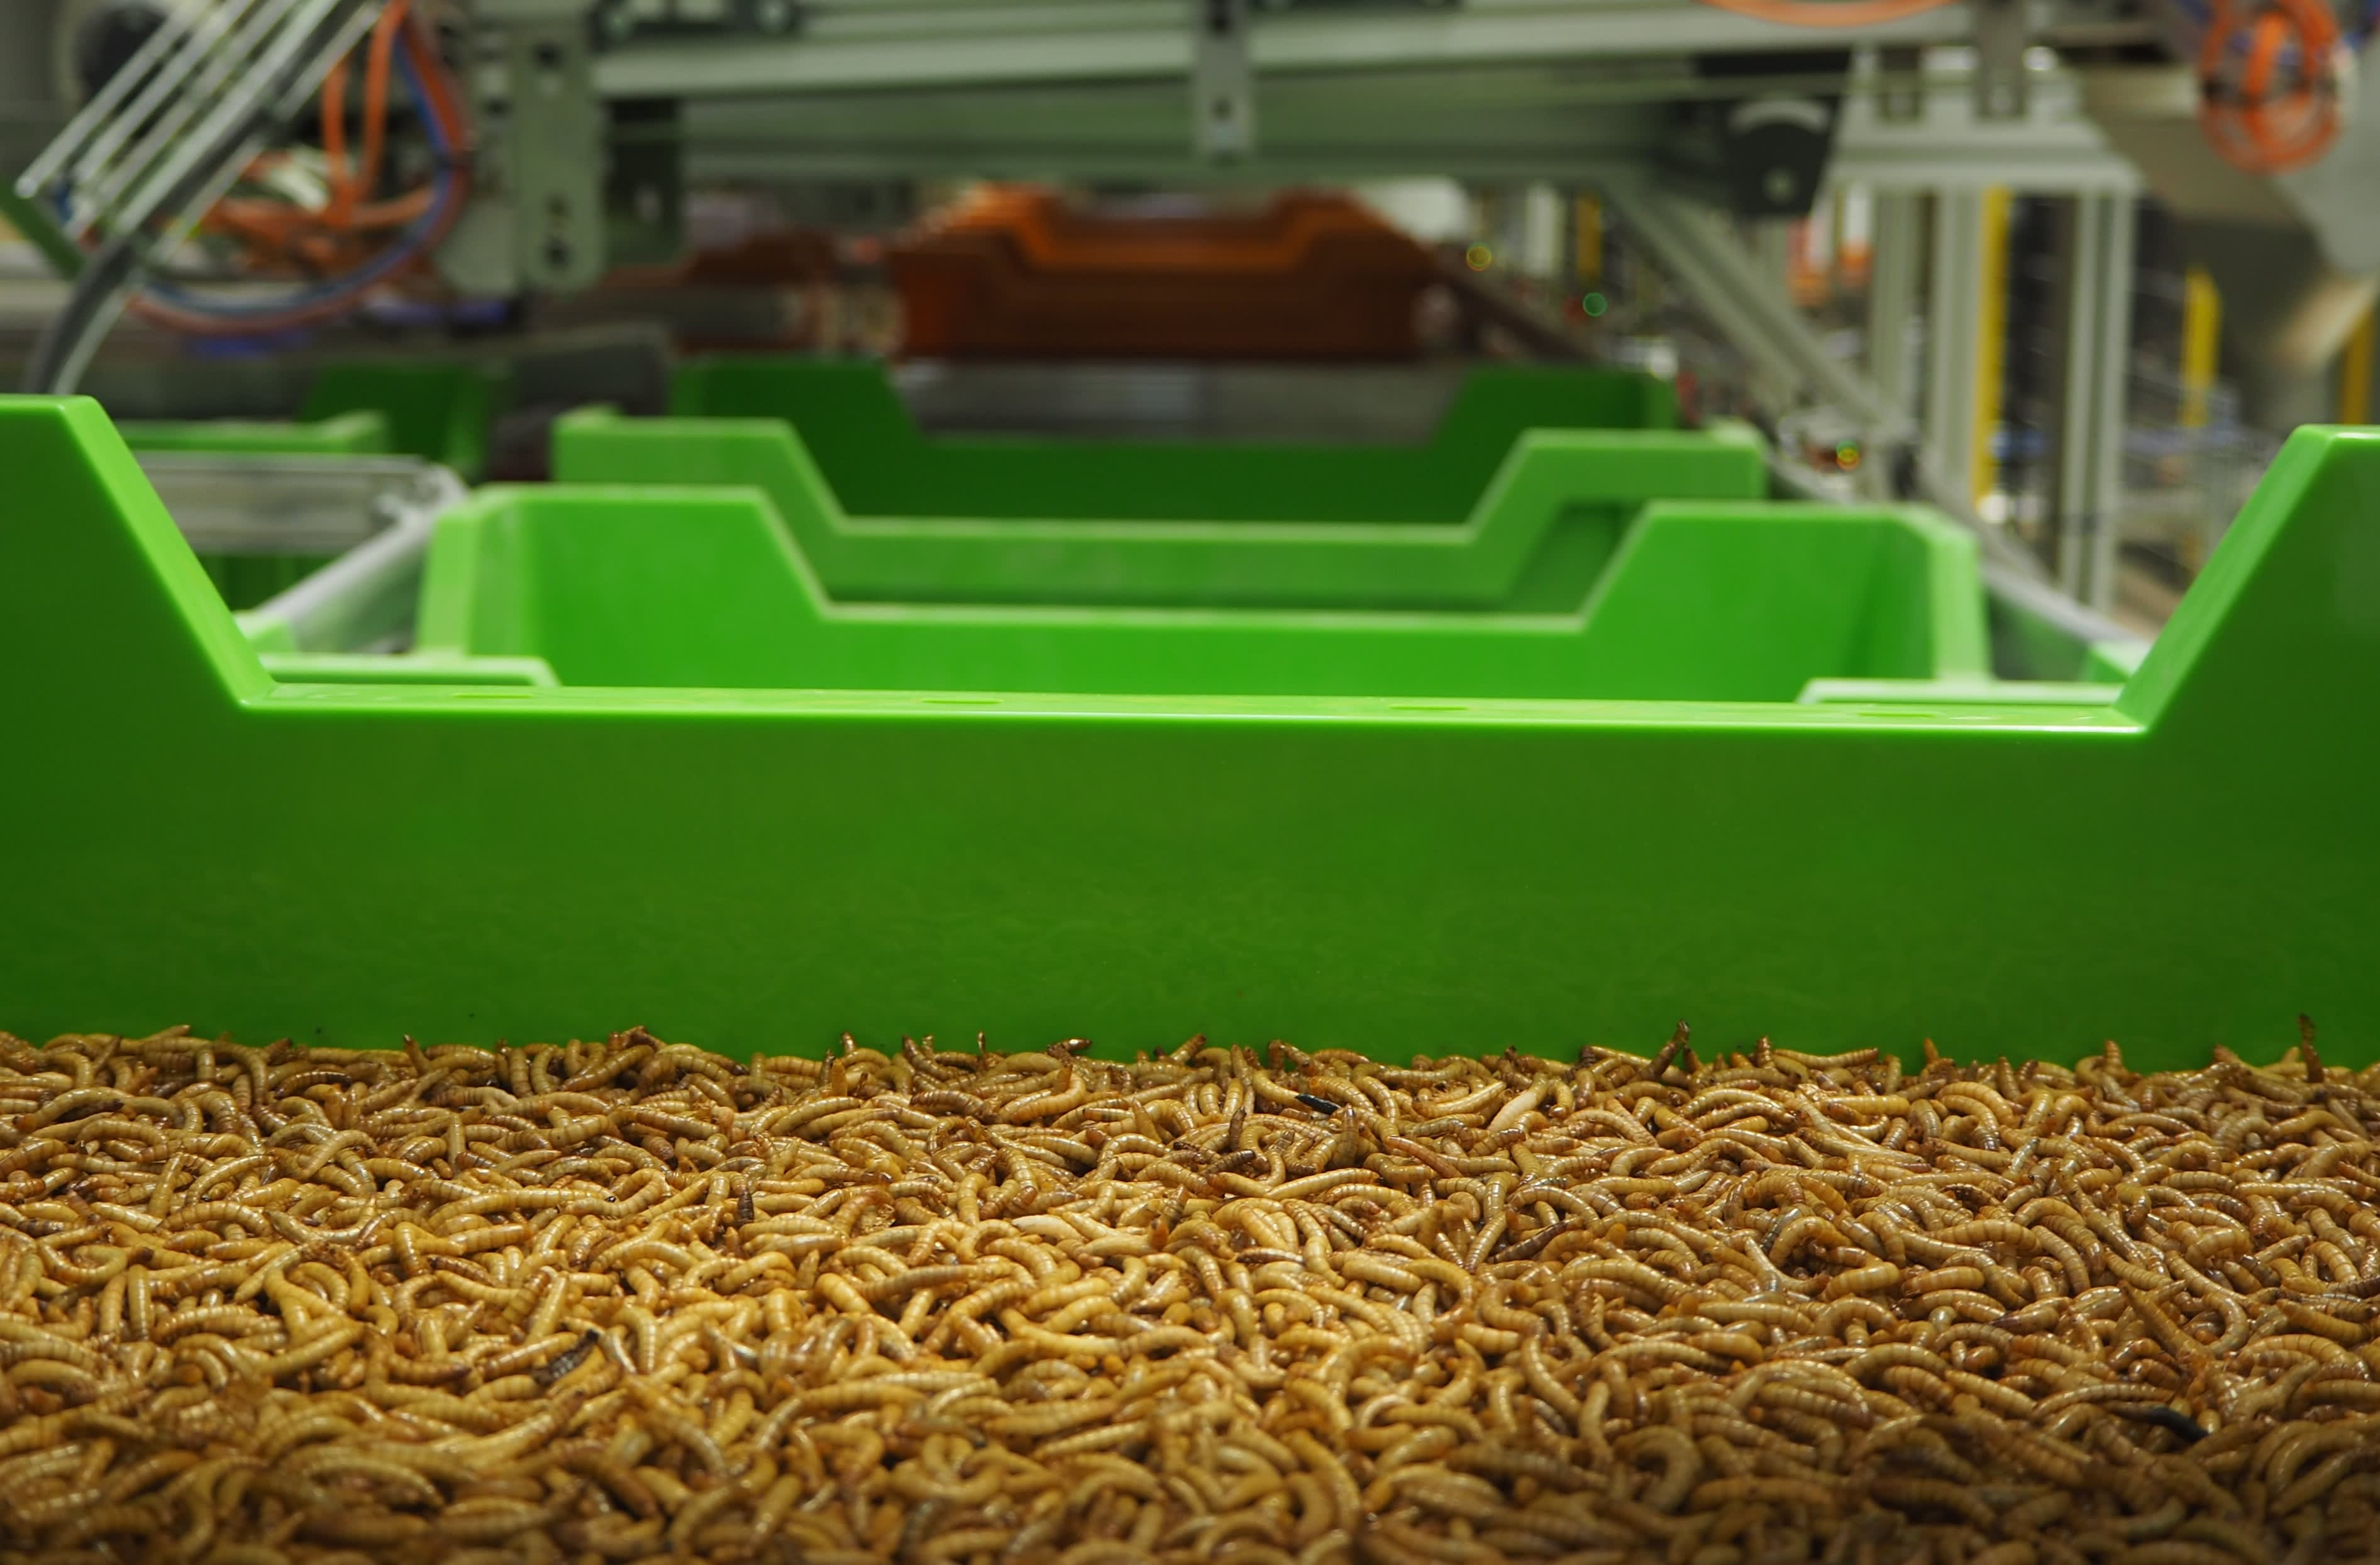 French firm that uses automation to build world's biggest insect farm